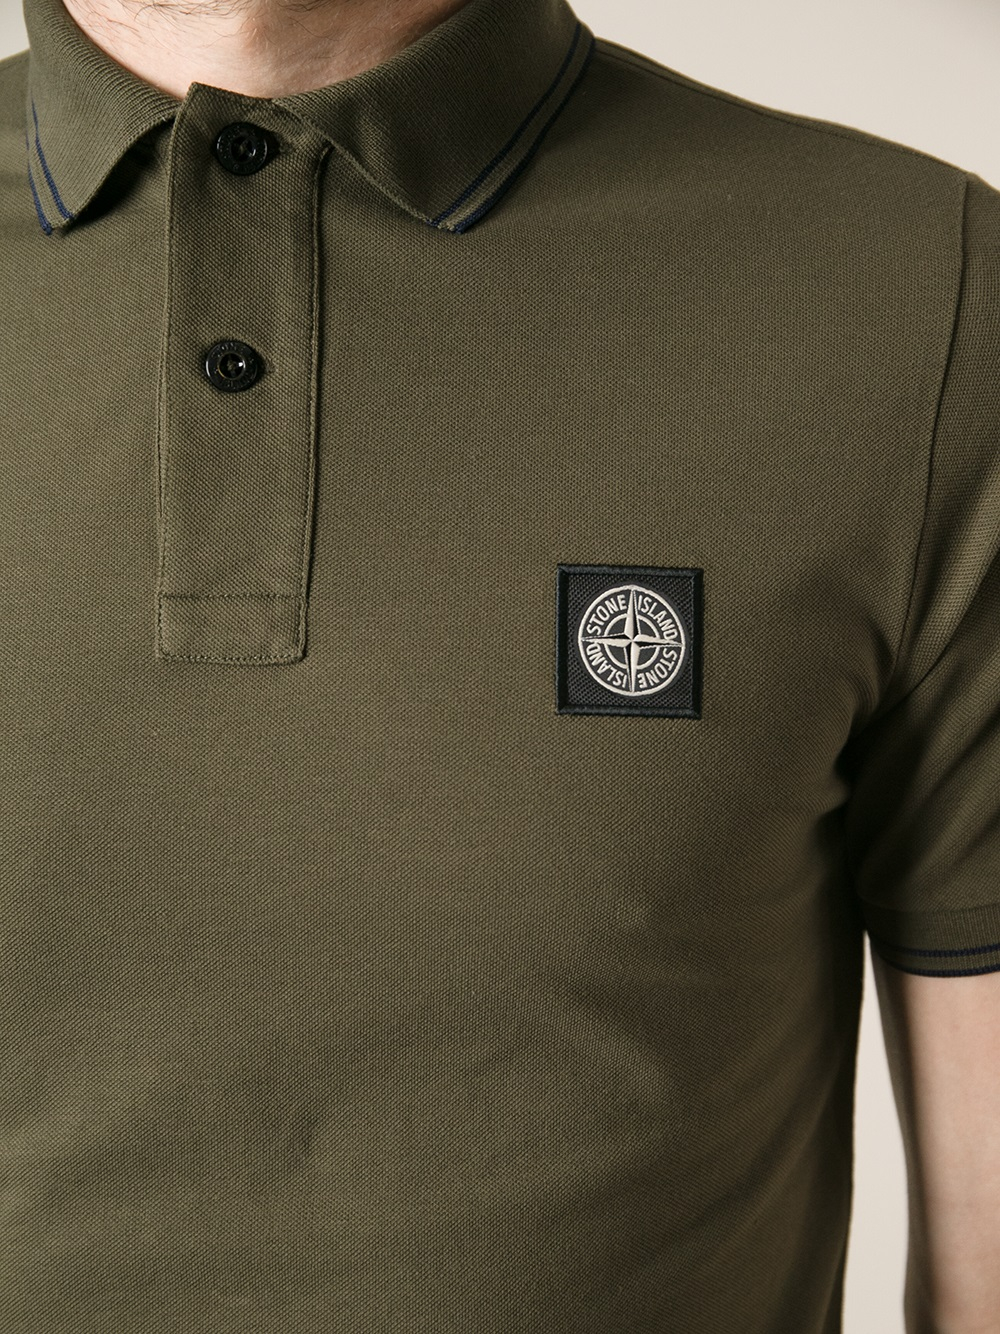 lyst stone island short sleeve polo shirt in green for men. Black Bedroom Furniture Sets. Home Design Ideas